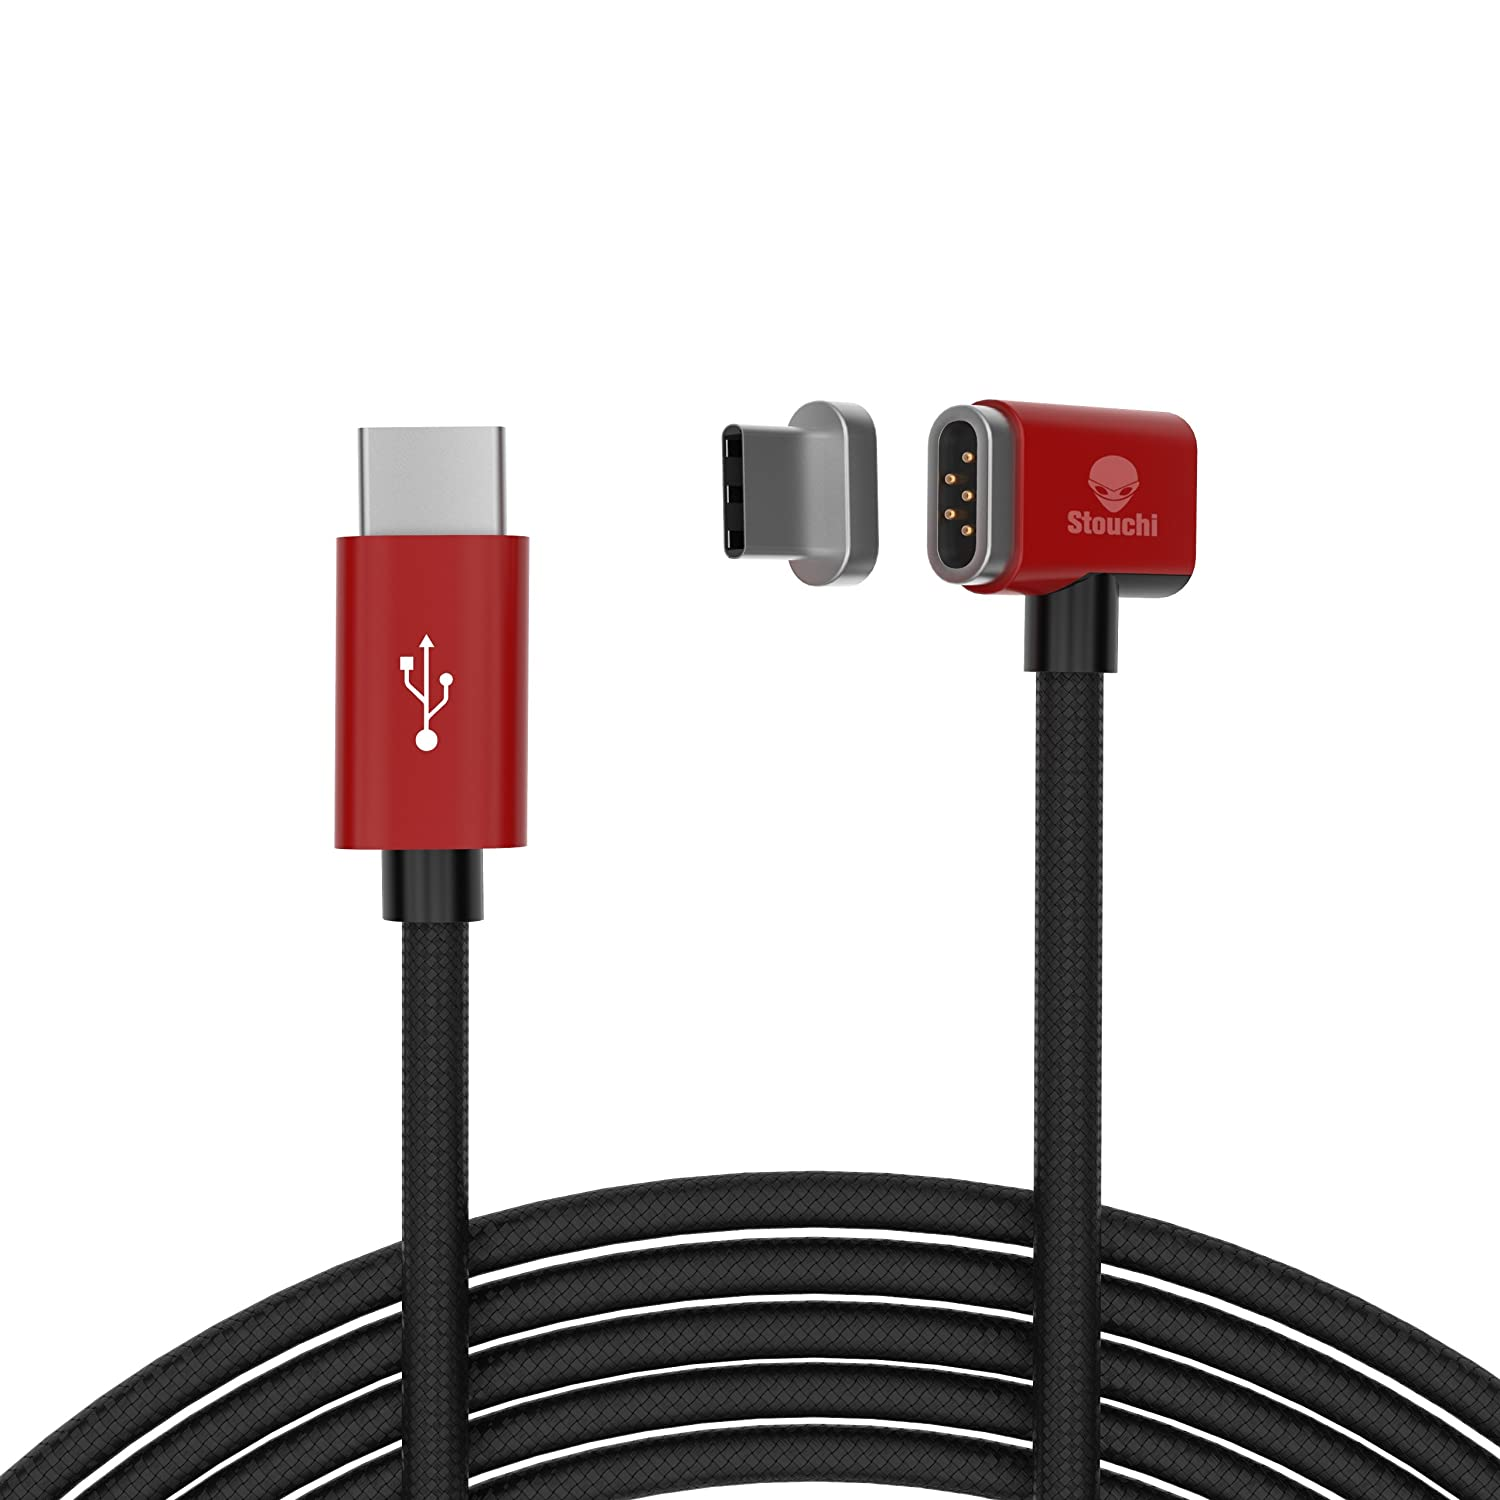 Magnetic USB C Cable for MacBook Pro, Stouchi Replacement MacSafe Magnetic USB C to USB C Charging Cable for MacBook Pro 15' 13' 12' with 4.3 A Fast Charging, Compatible Other USB-C Devices (5ft) Red COSCOD E9-1HXM-PXSO